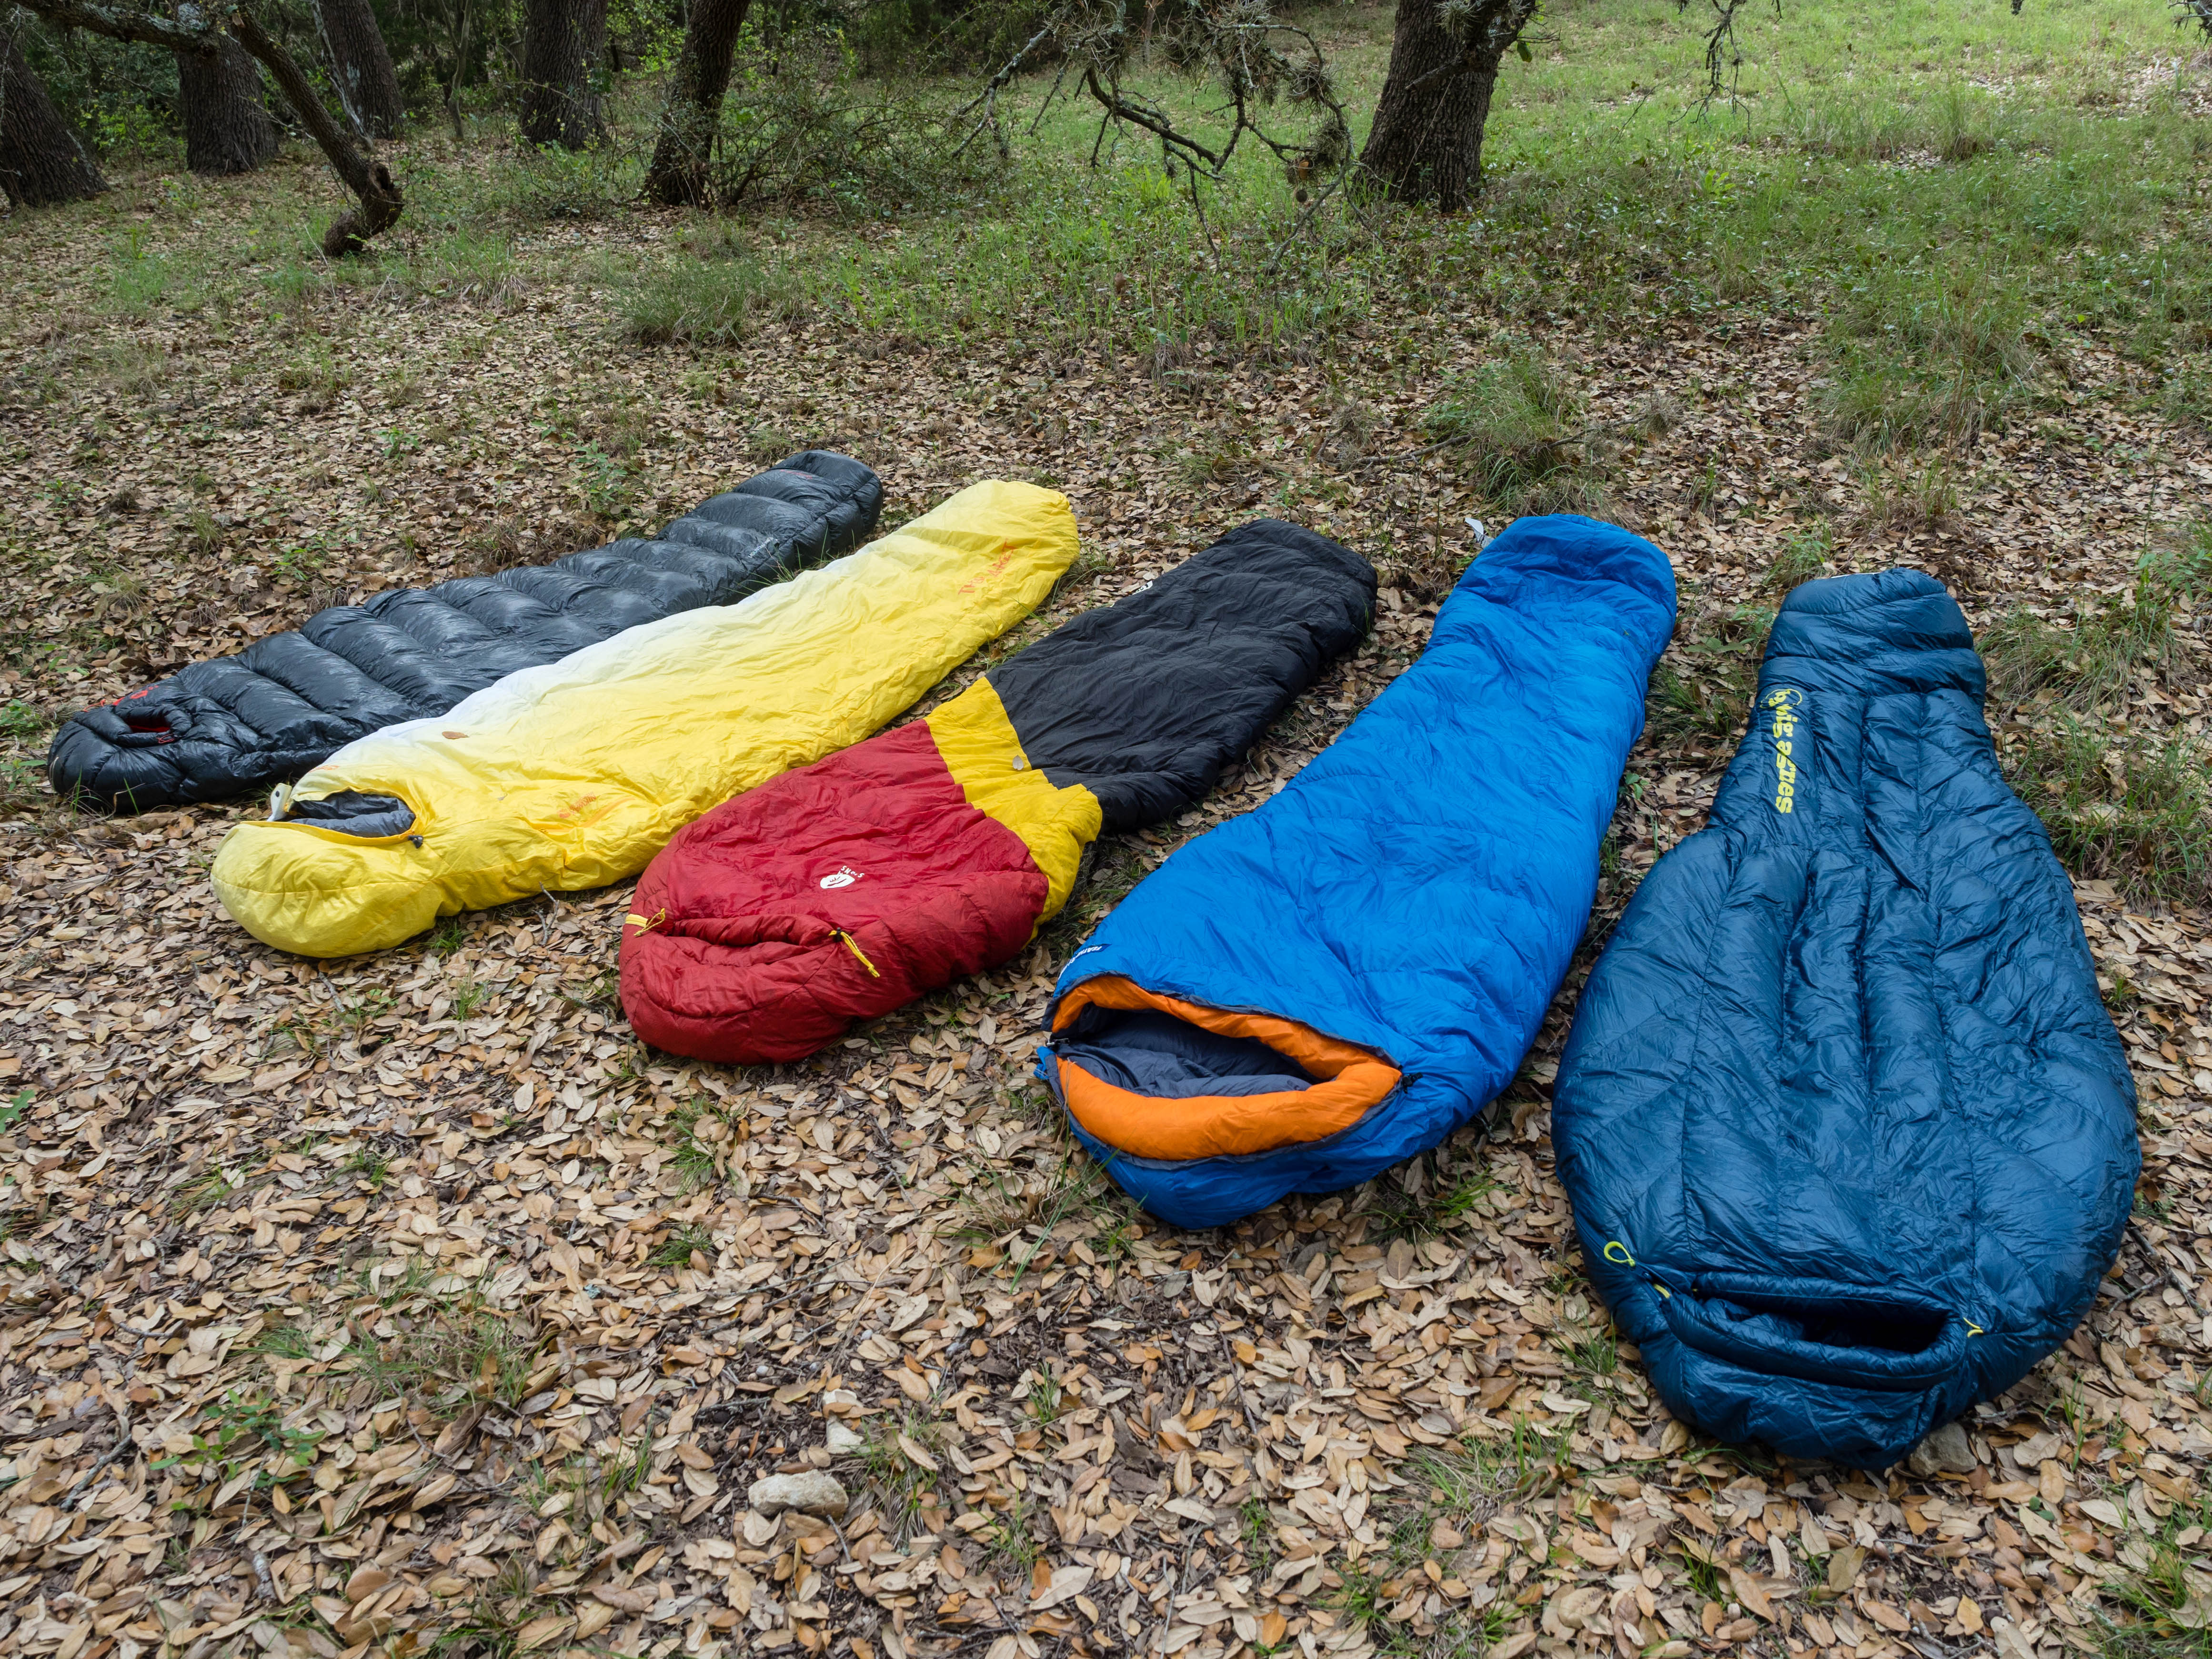 The Best Sleeping Bags Reviews and